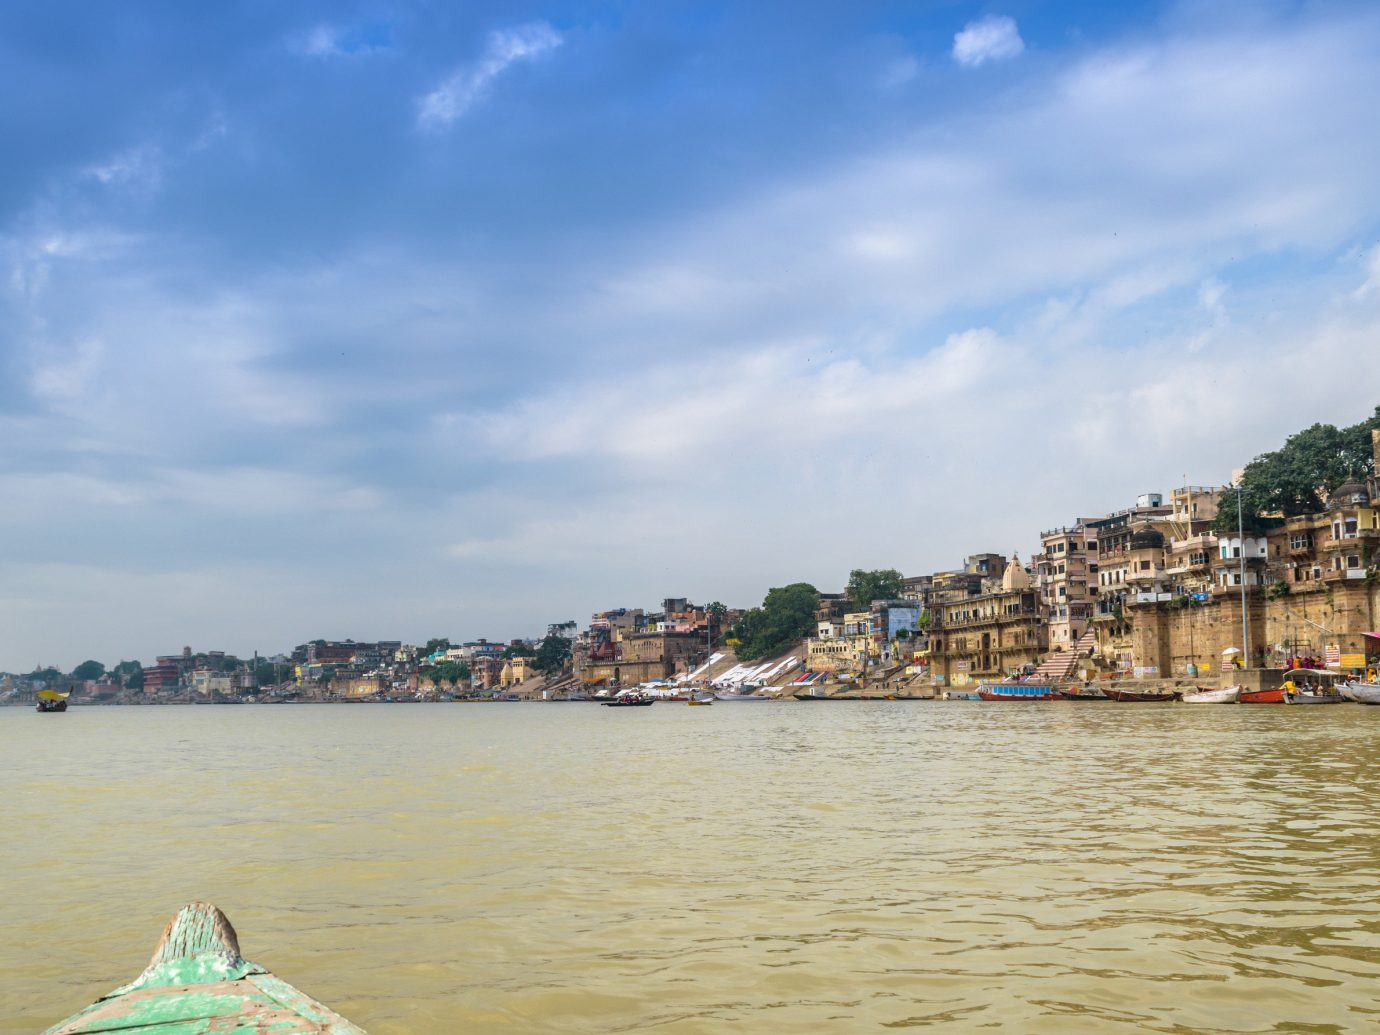 India Jaipur Jodhpur Trip Ideas sky water outdoor Boat waterway Sea body of water cloud River Coast tourism shore Beach bank vehicle City coastal and oceanic landforms Ocean Harbor boating tree Canal horizon Lake vacation bay channel recreation watercraft day